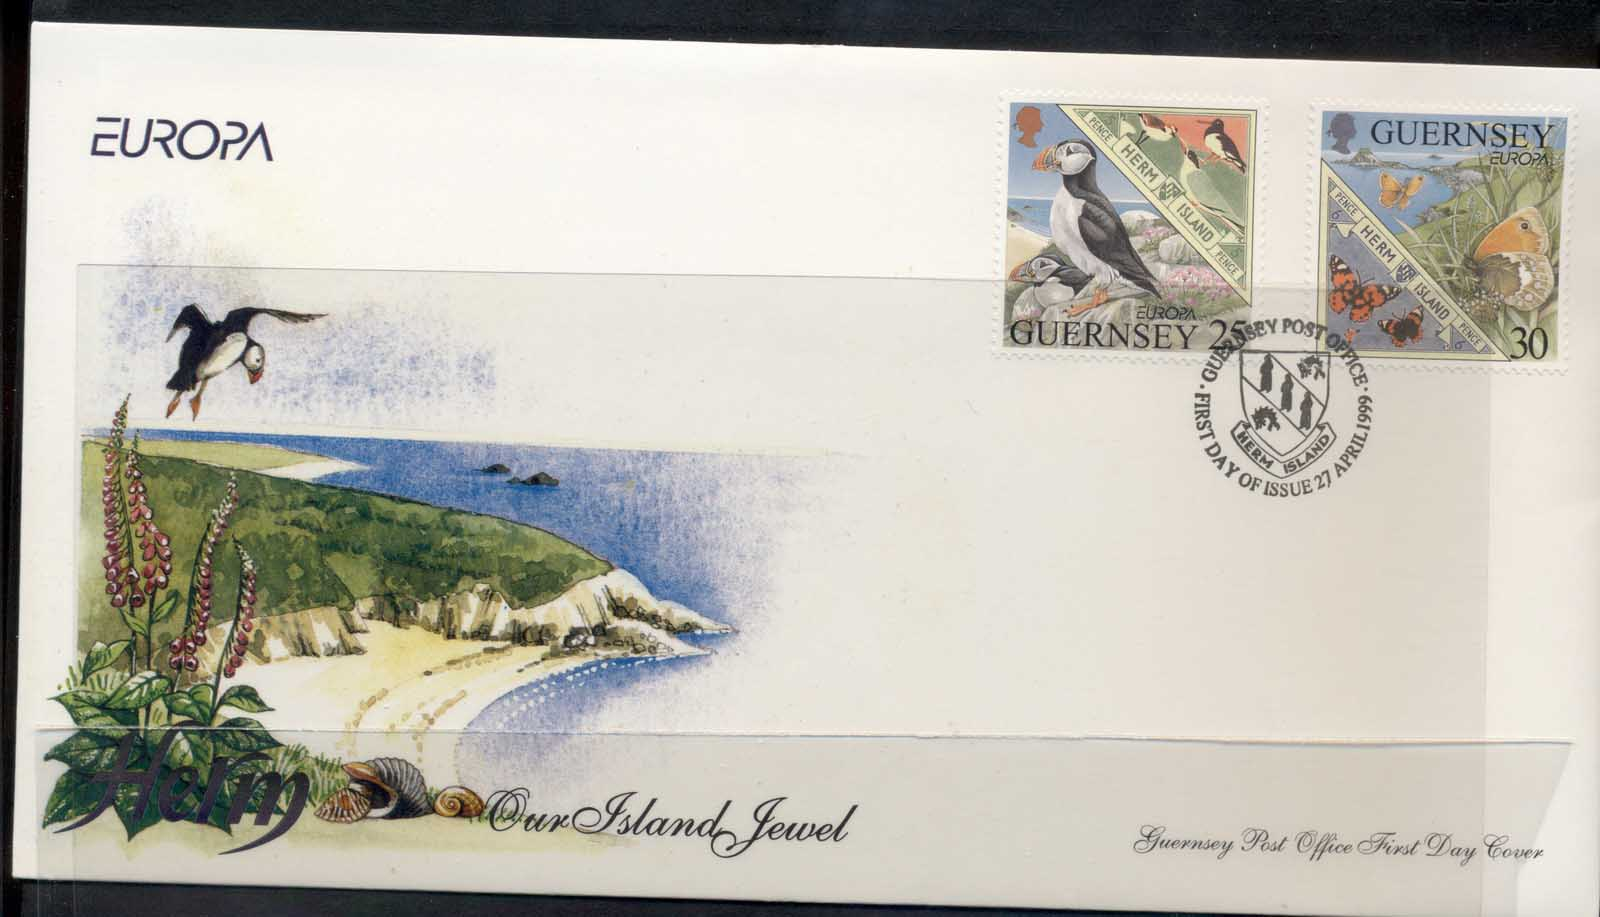 Guernsey 1999 Europa Nature Parks FDC